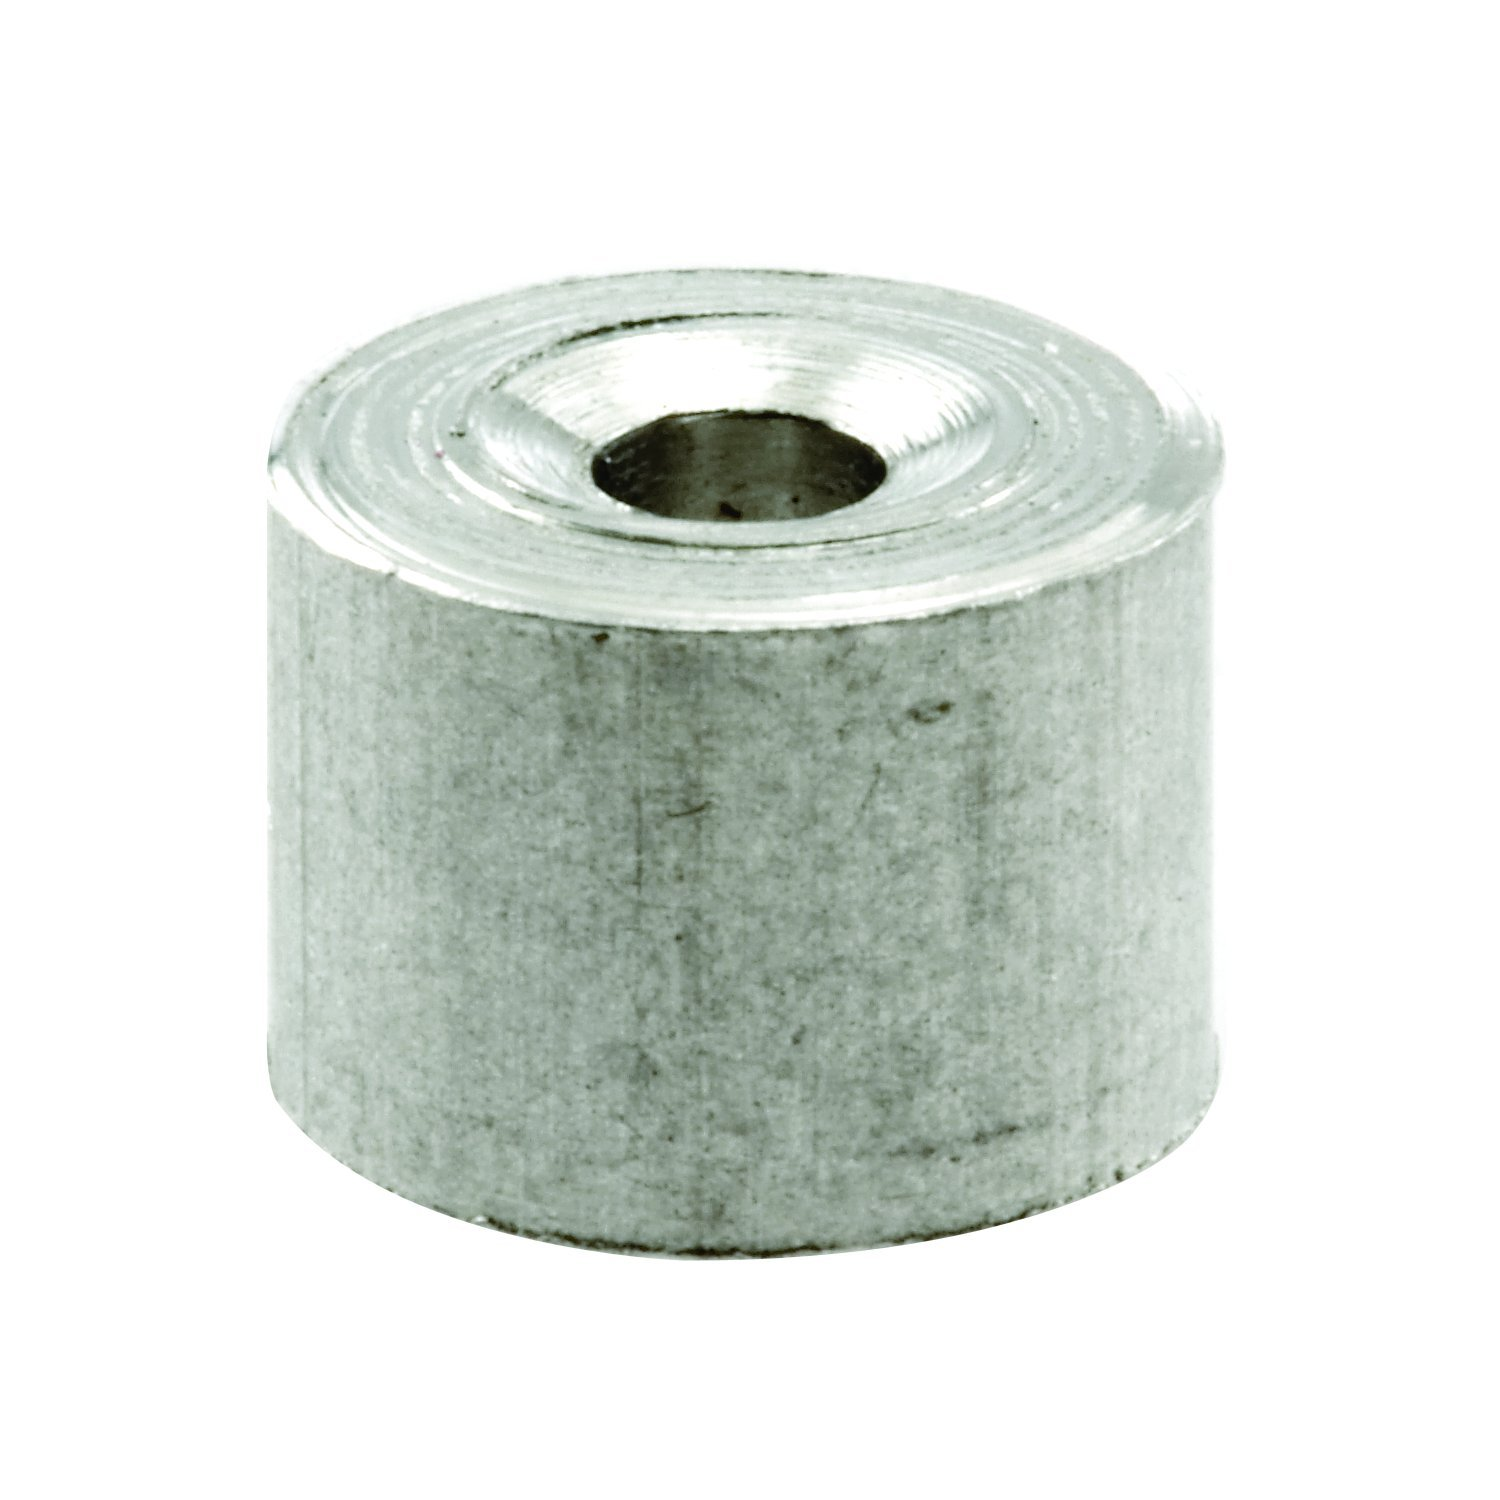 Prime-Line Products GD 12171 Cable Stops, 1/16'', Extruded Aluminum, Pack of 100